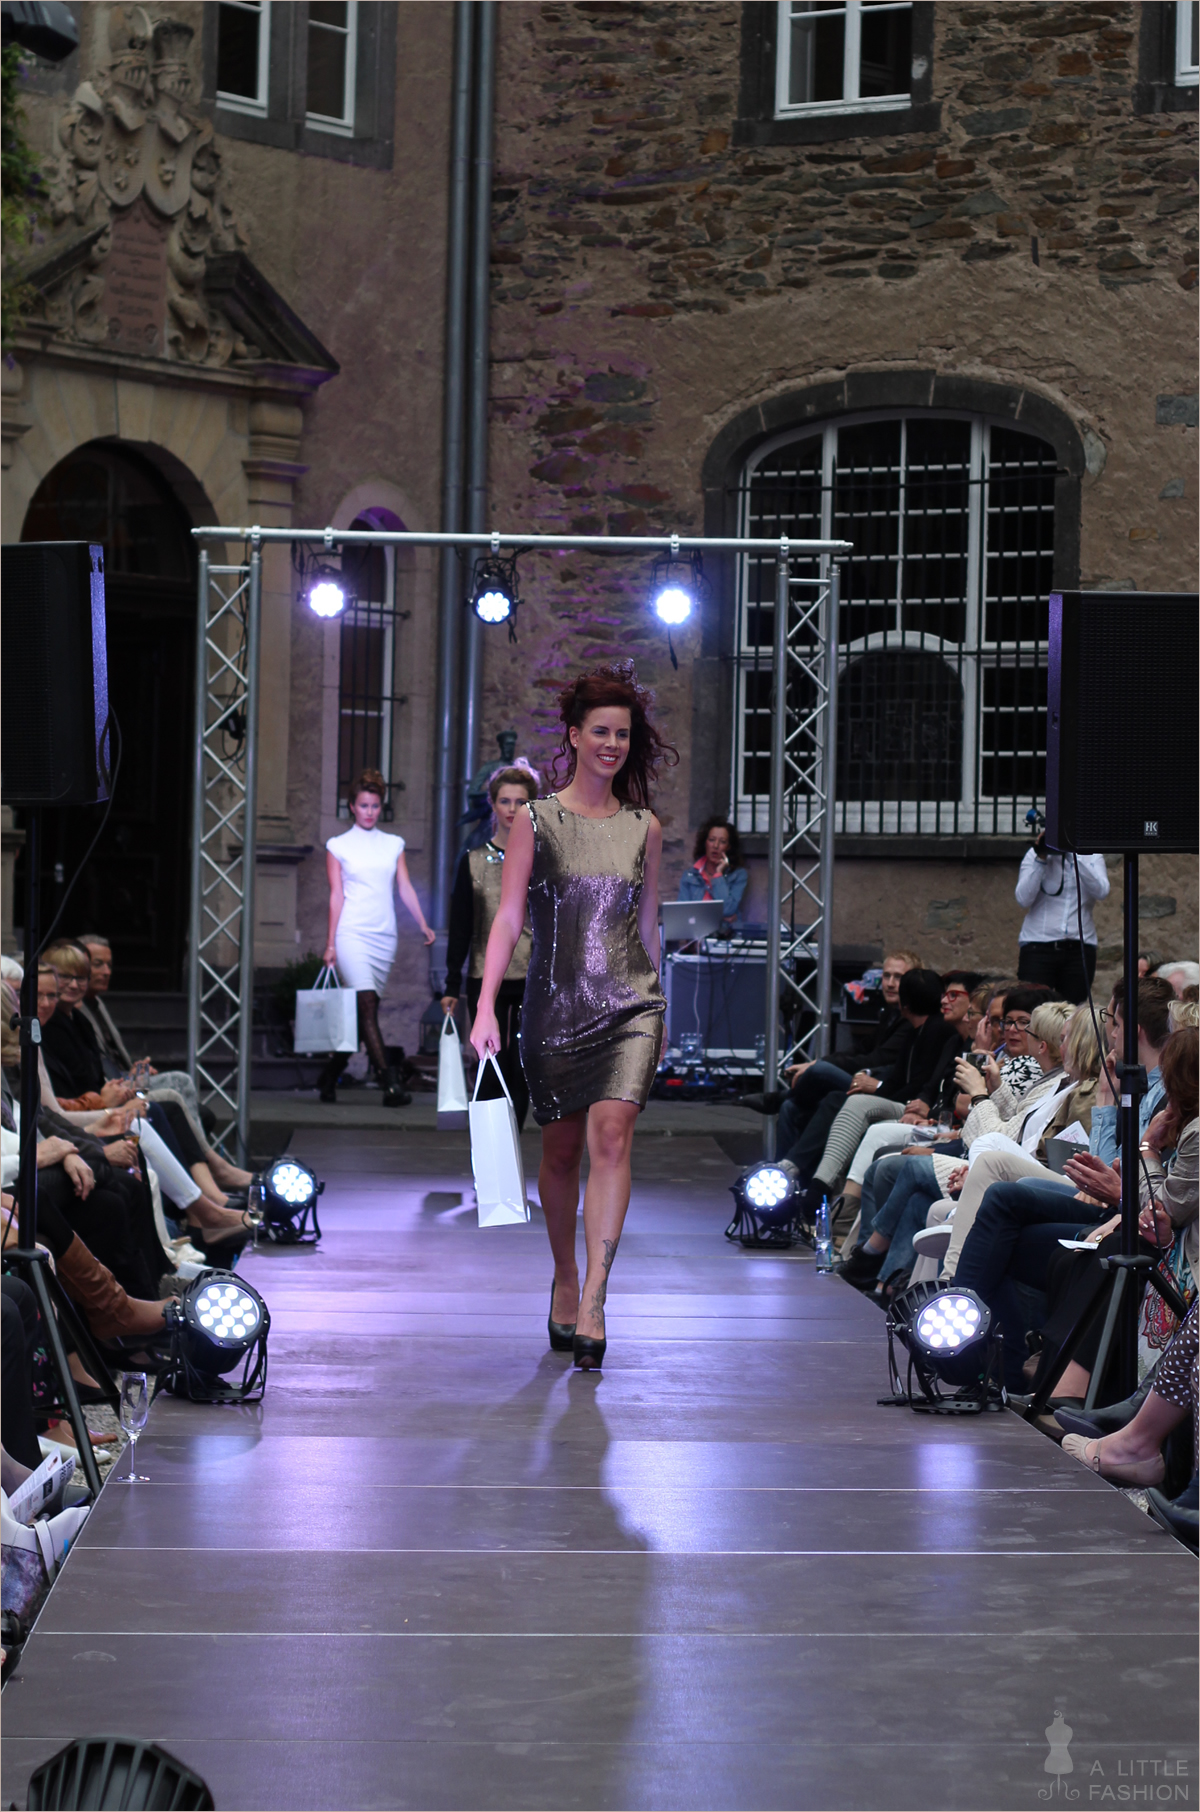 fashion_modenschau_modemeetsnamedy_charity-gala_michele-weiten-design27